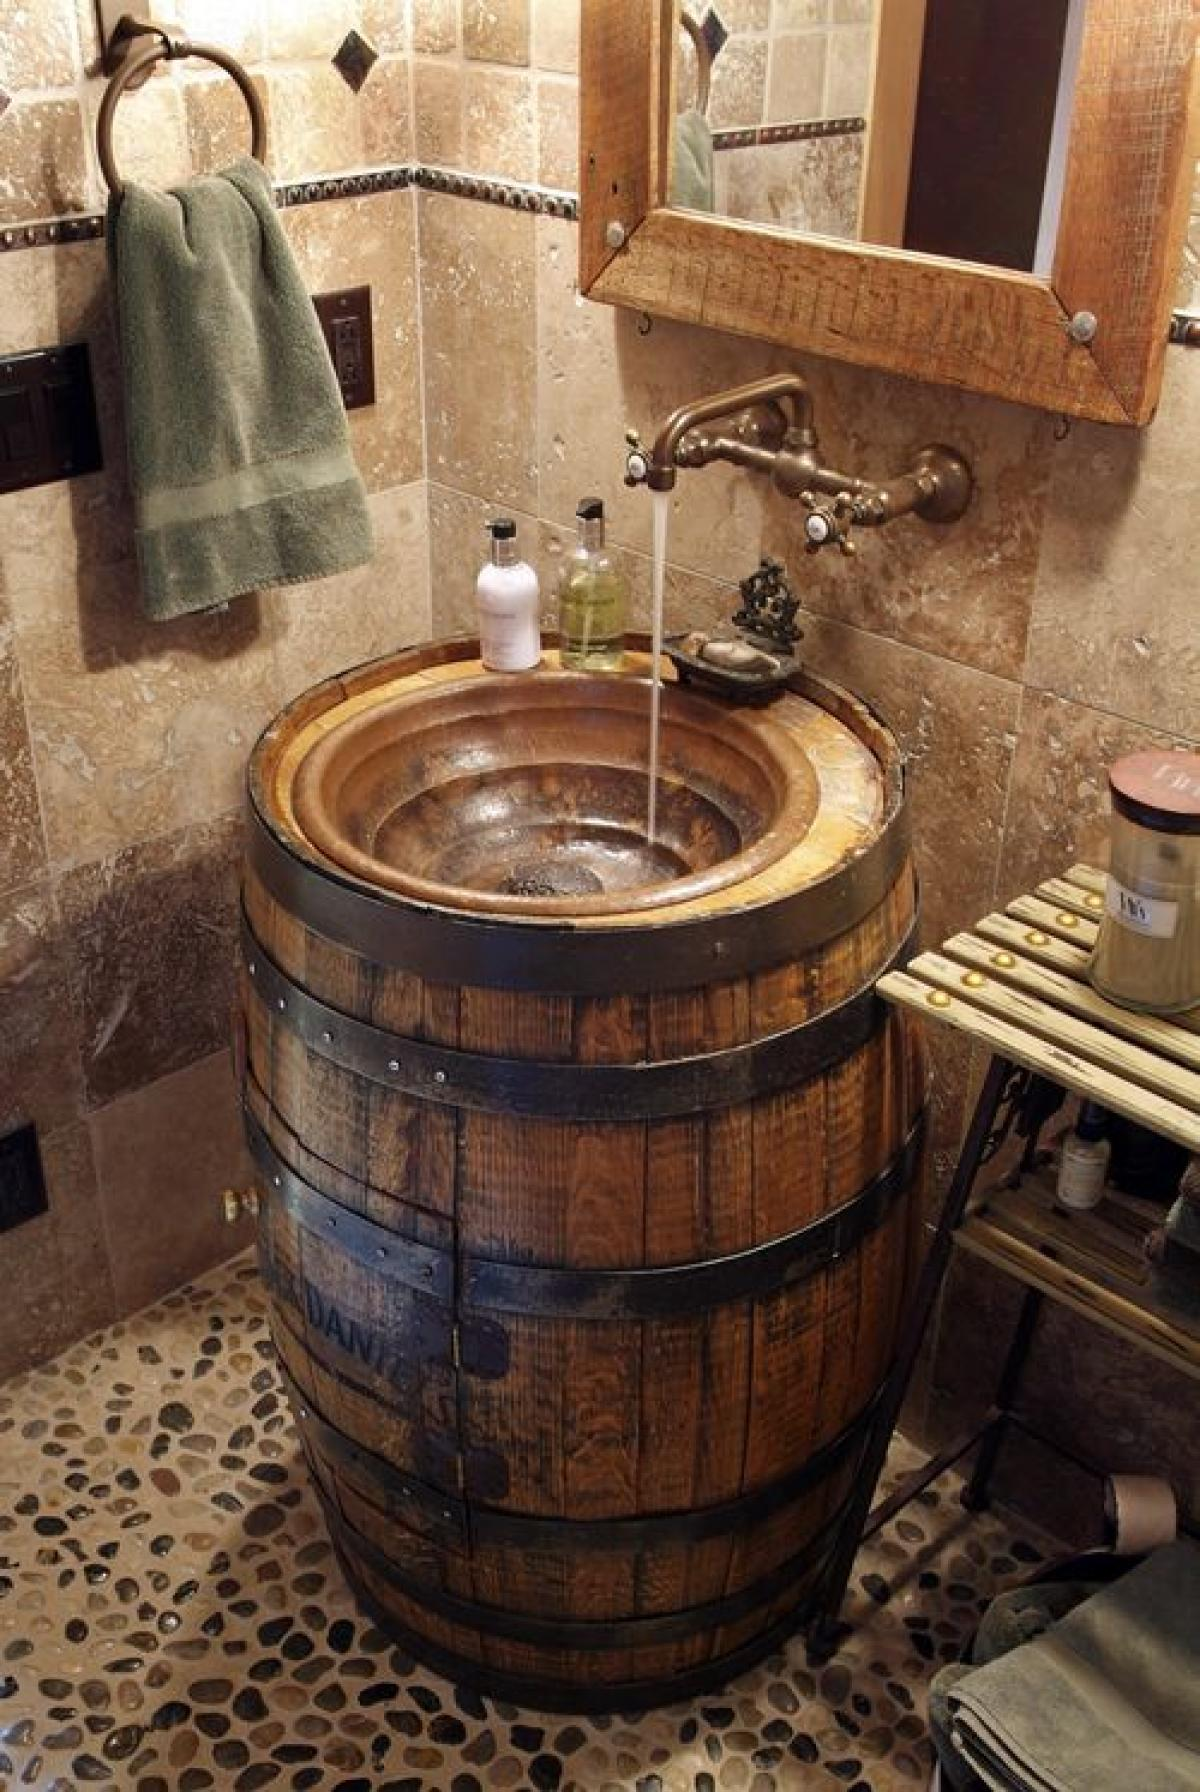 Rustic bathroom decor - 12 Converted Whiskey Barrel Sink